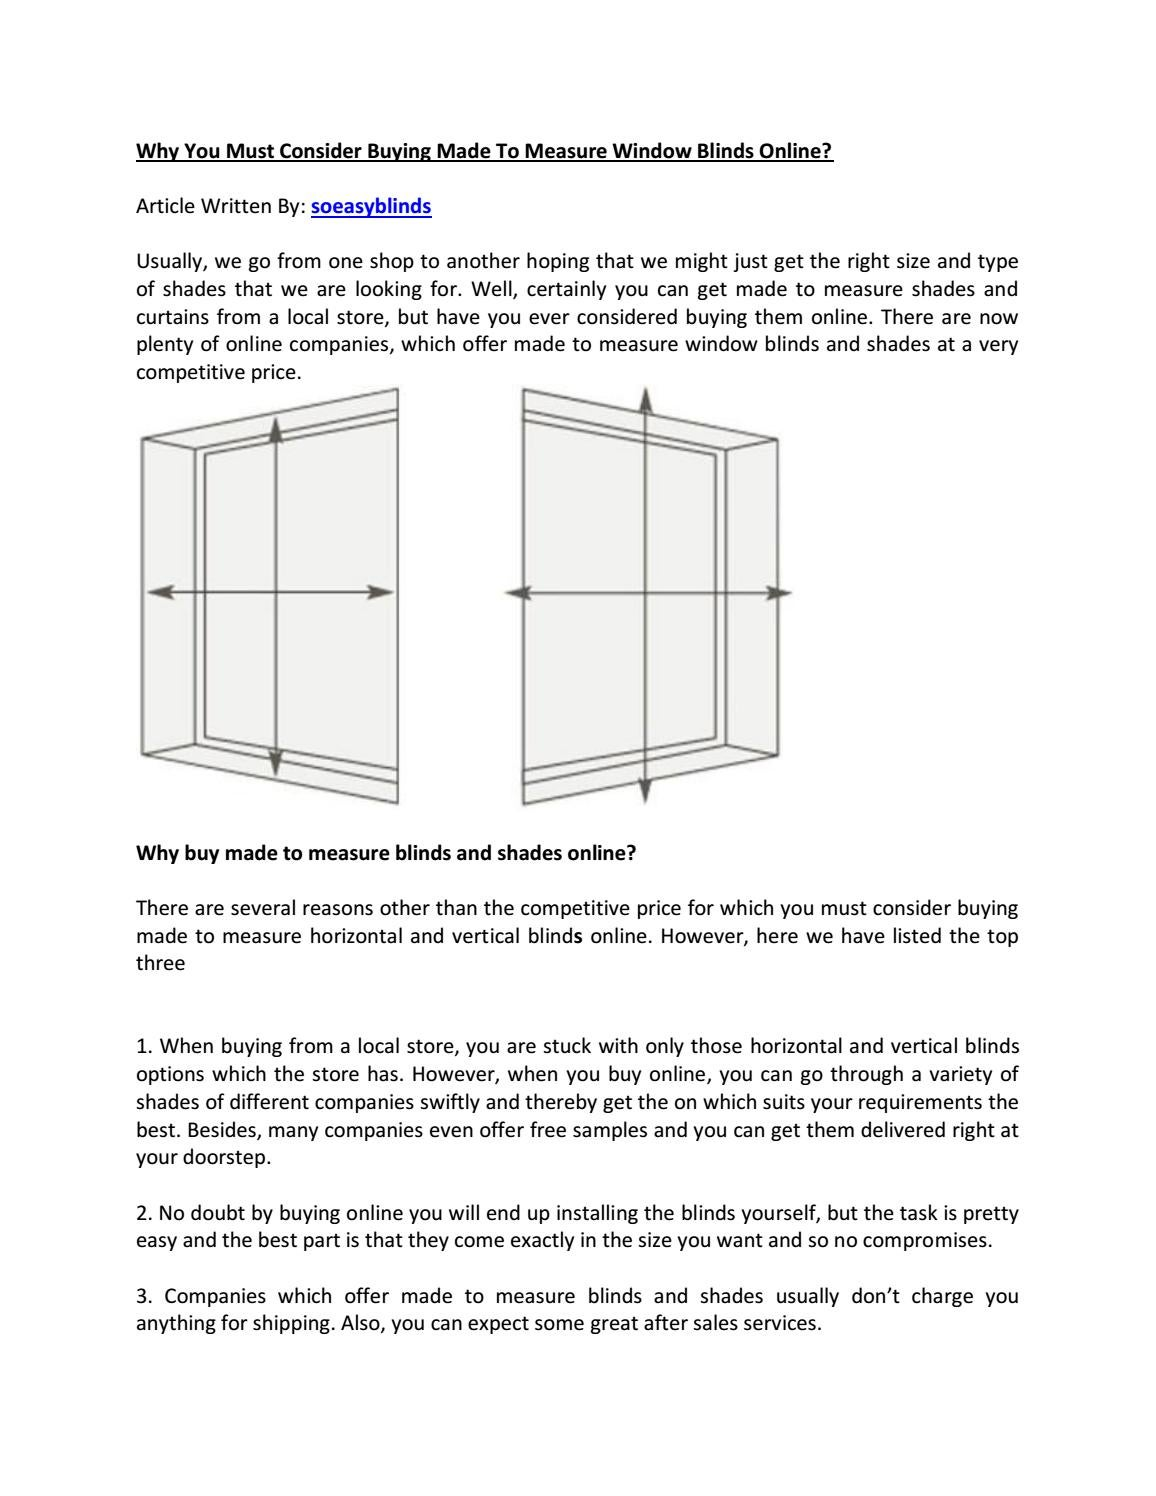 Why You Must Consider Ing Made To Measure Window Blinds Online